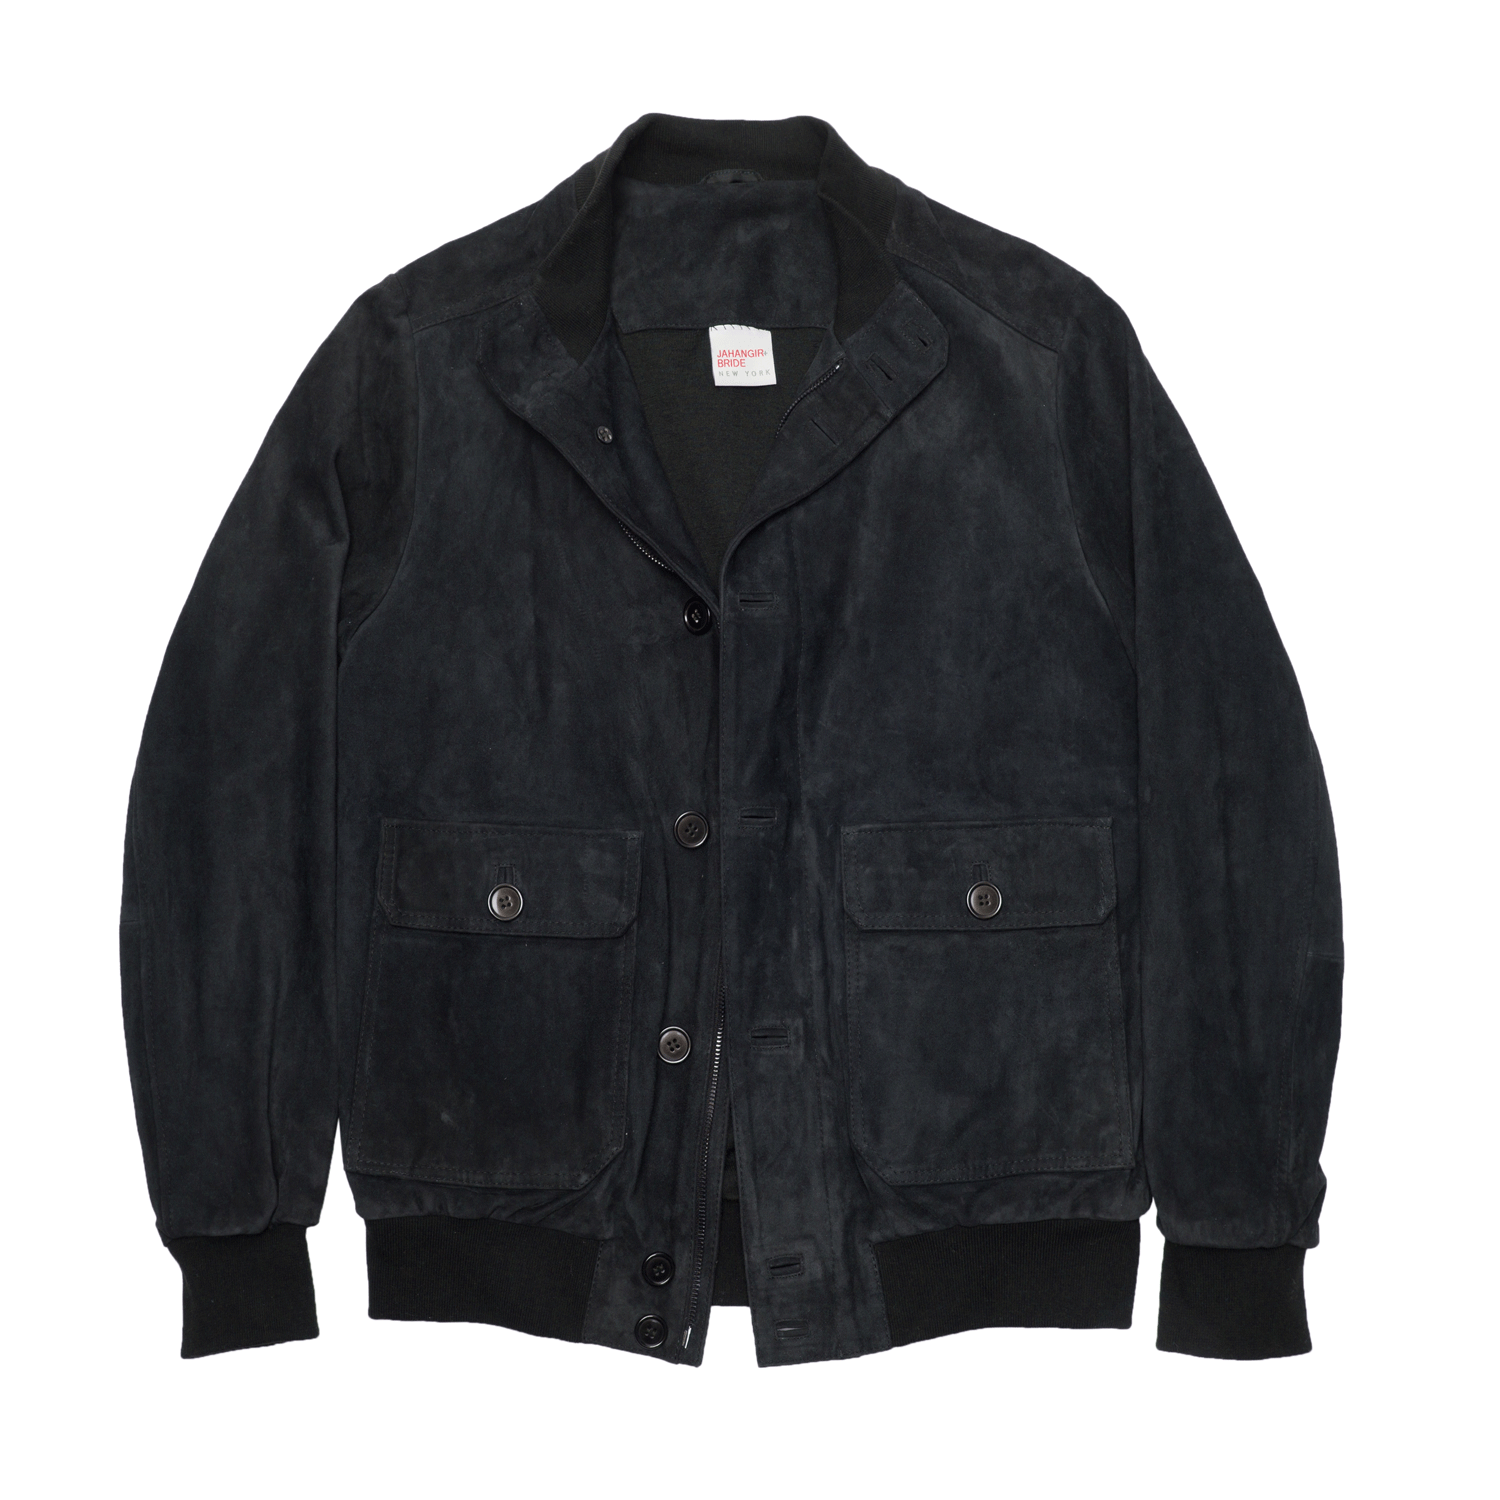 Suede Leather Bomber Jacket - Navy